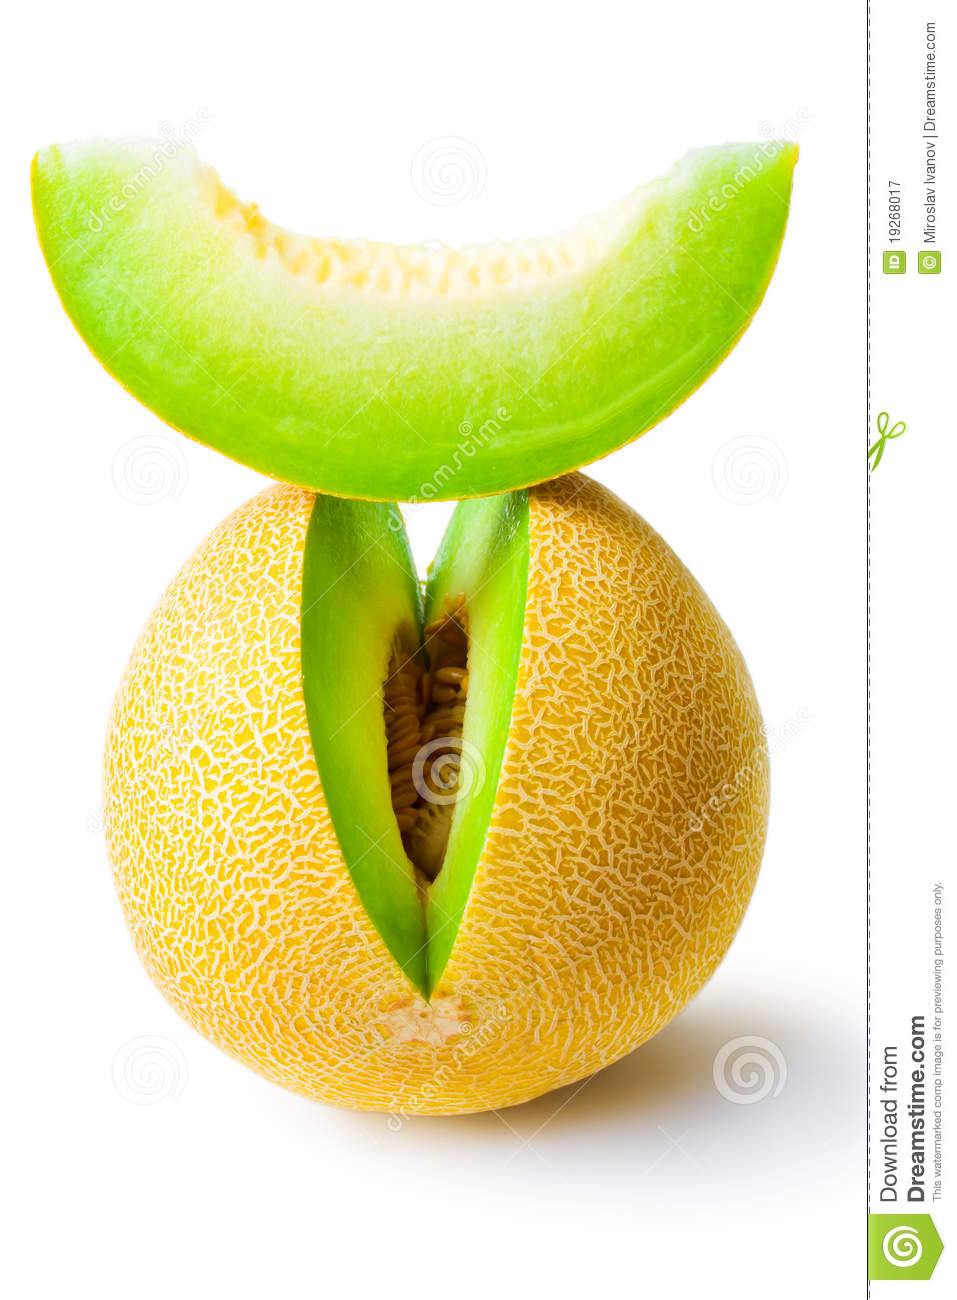 Honey Dew Melon clipart #8, Download drawings